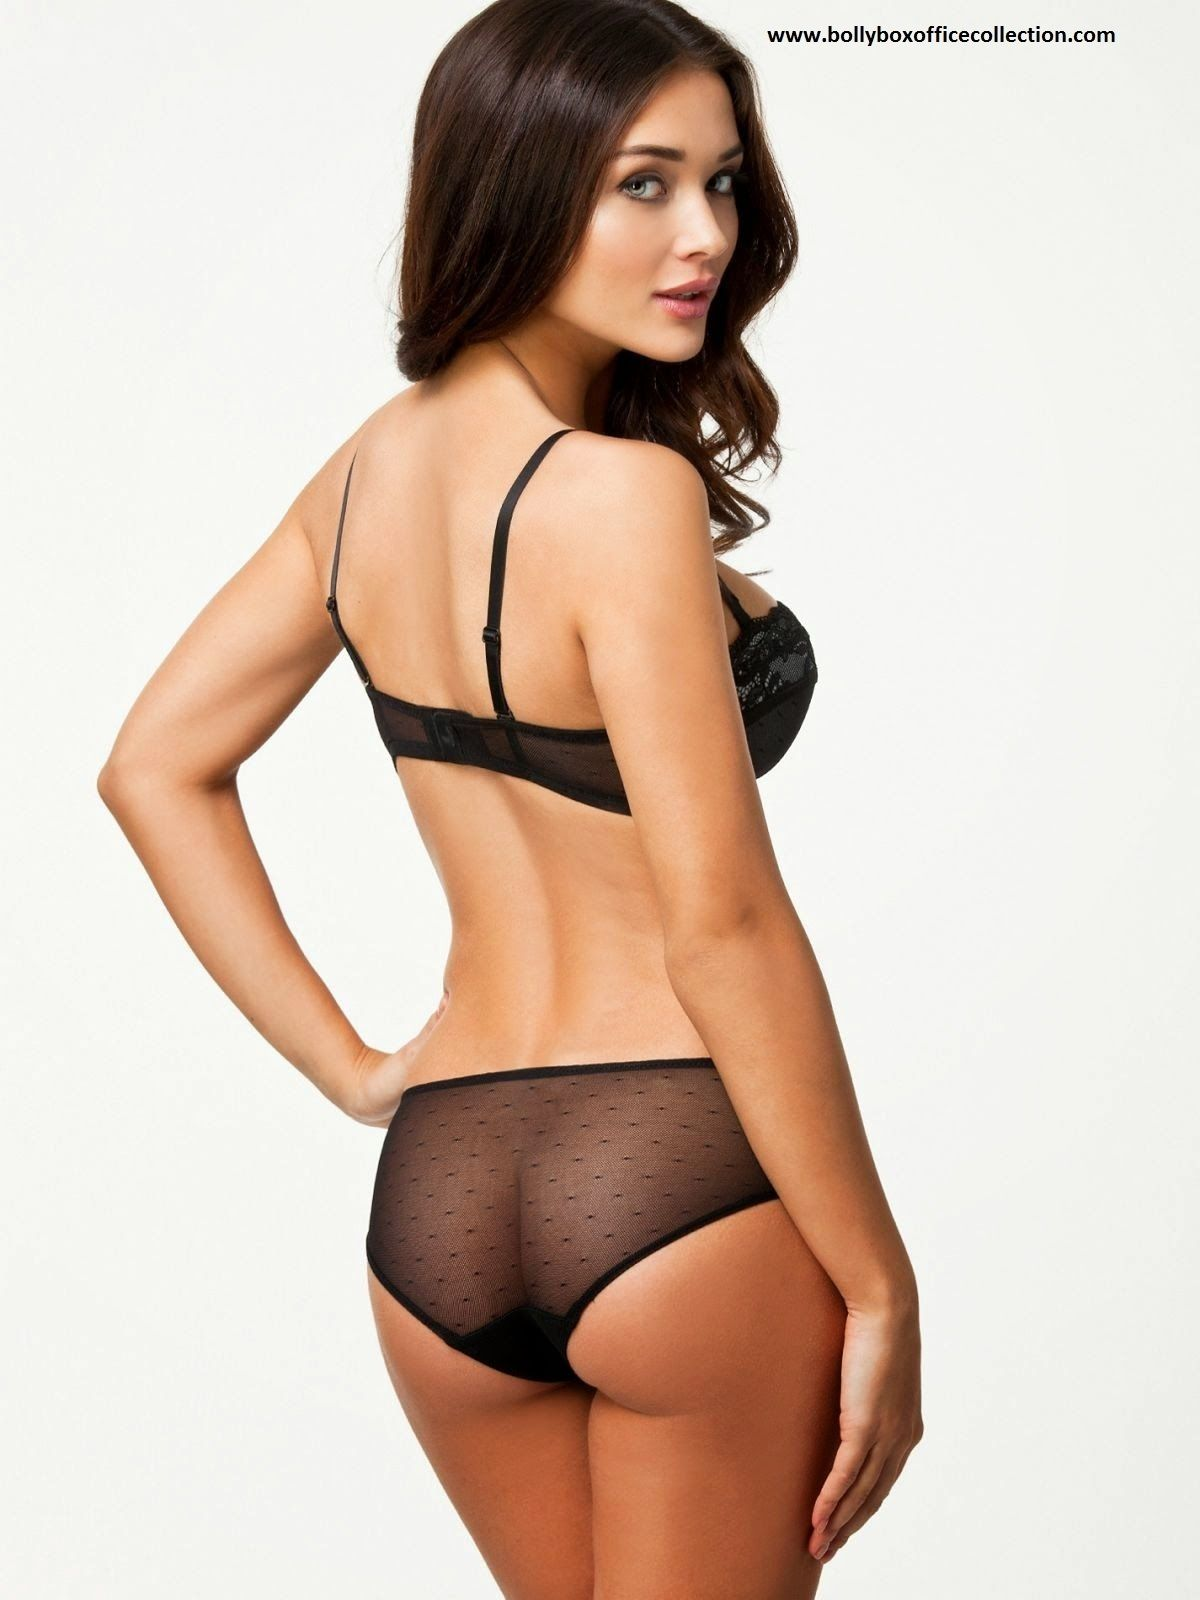 Amy Jackson Top Less Photos 60 hottest amy jackson bikini will prove that she is one of